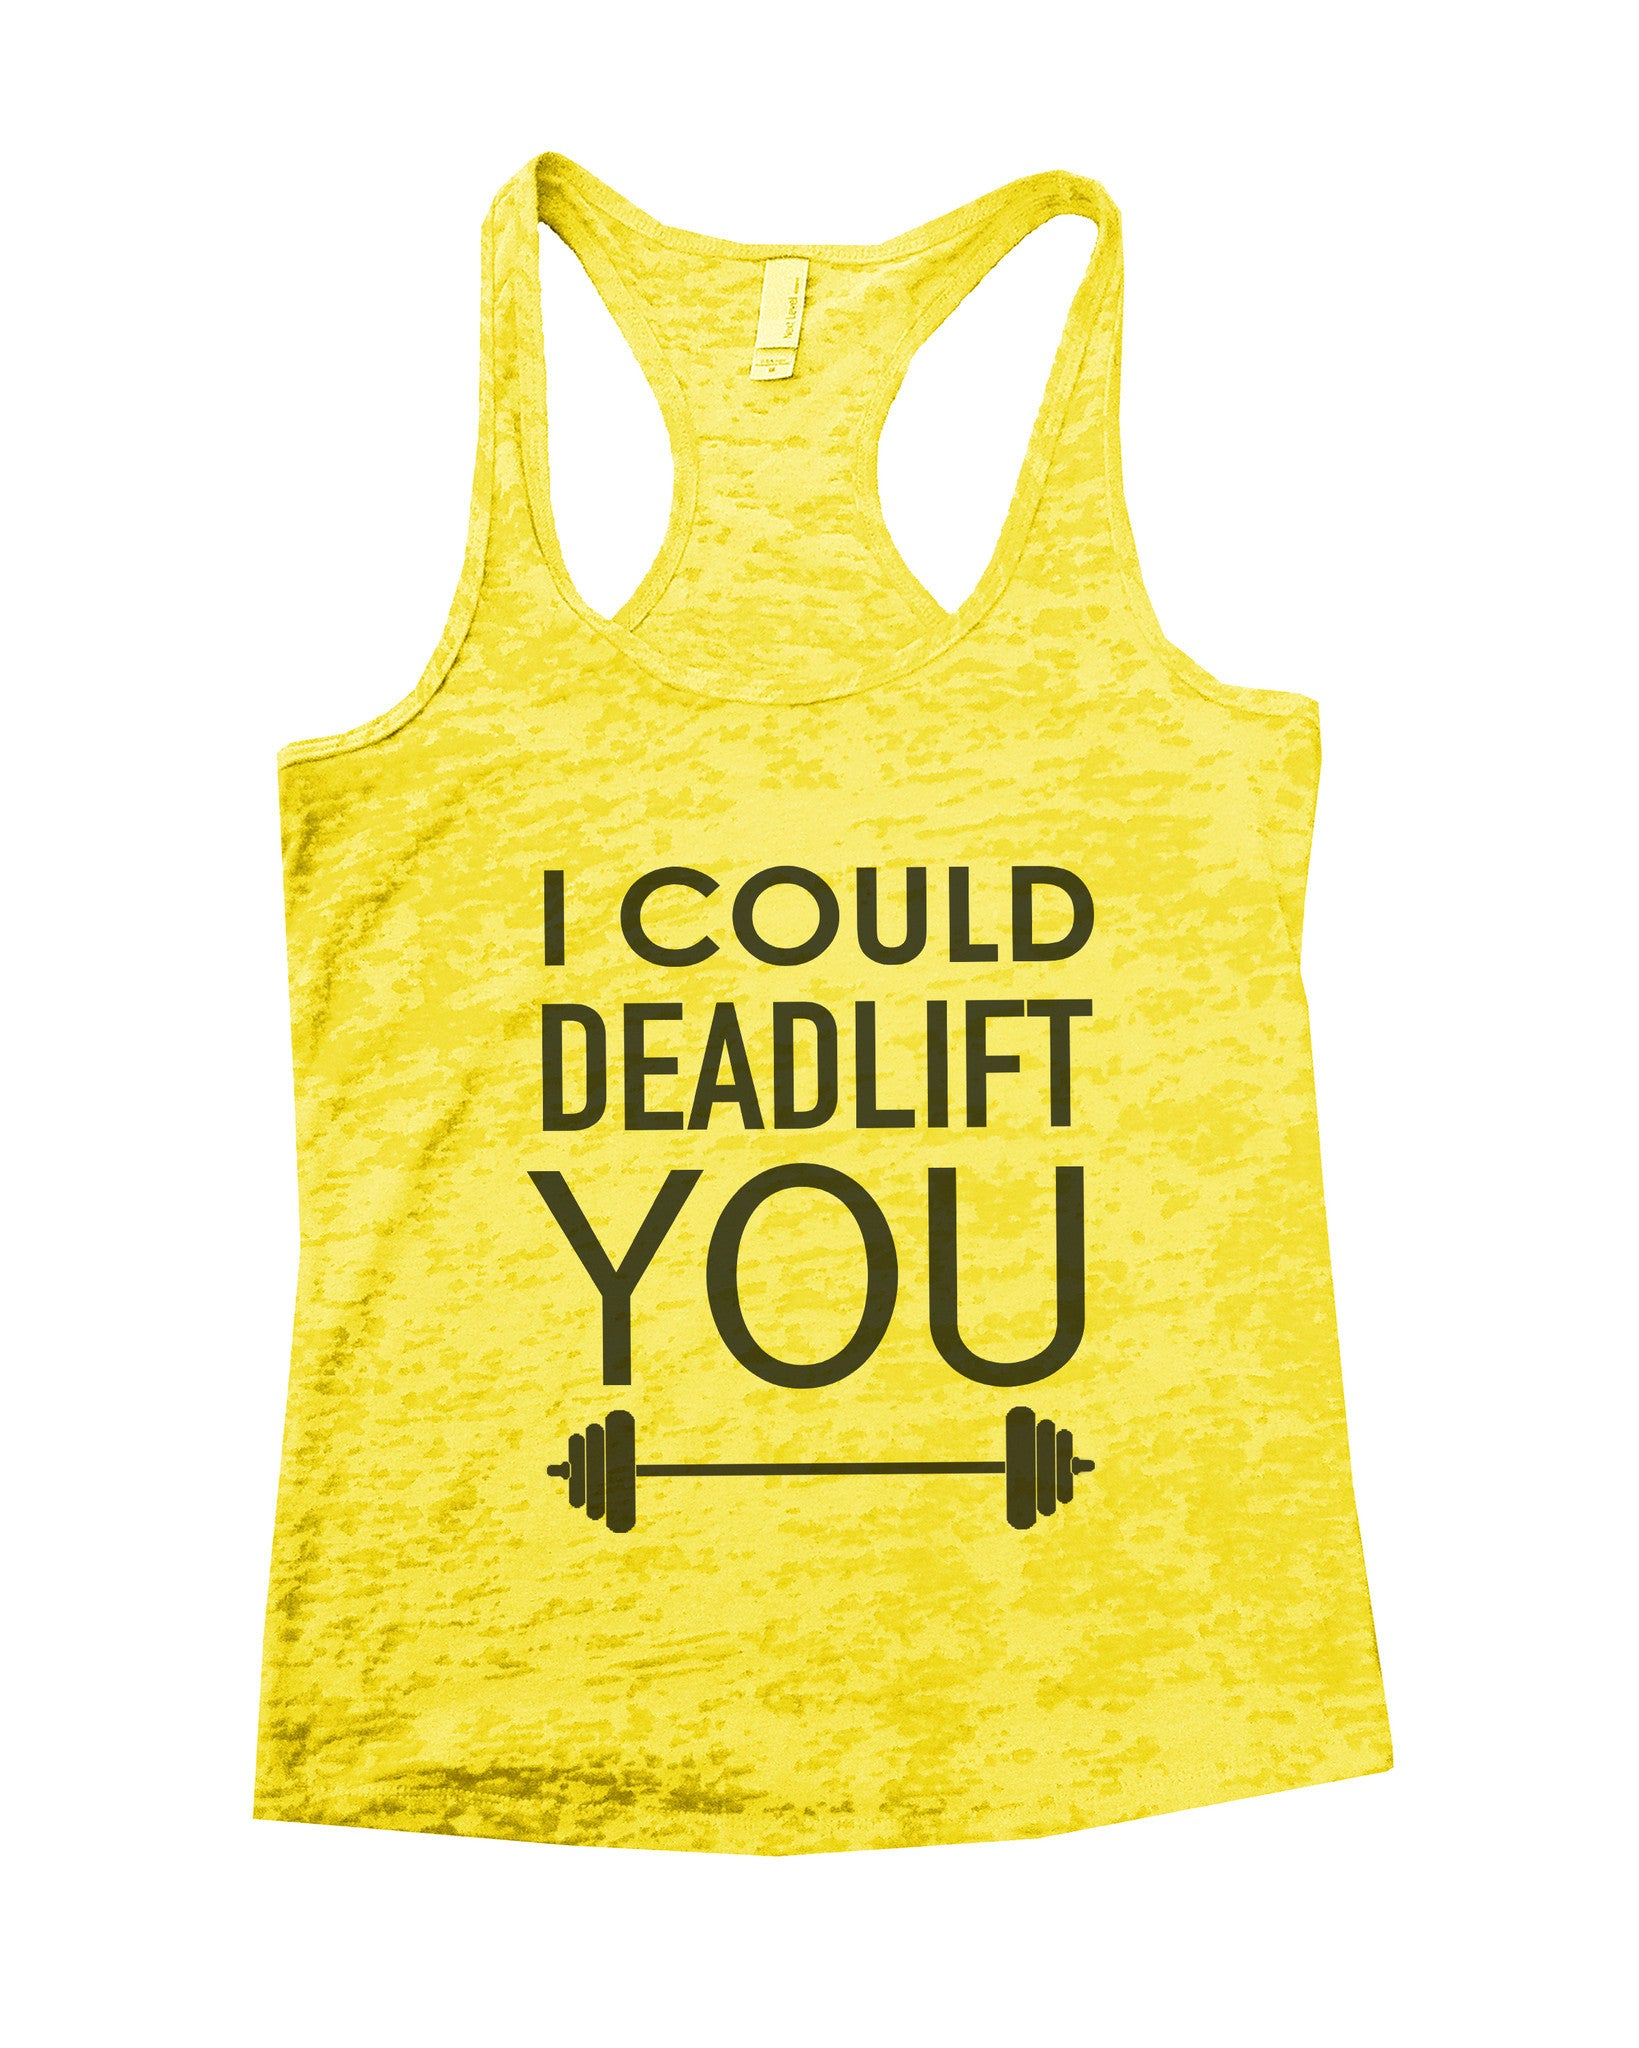 I Could Deadlift You Burnout Tank Top By BurnoutTankTops.com - 552 - Funny Shirts Tank Tops Burnouts and Triblends  - 6